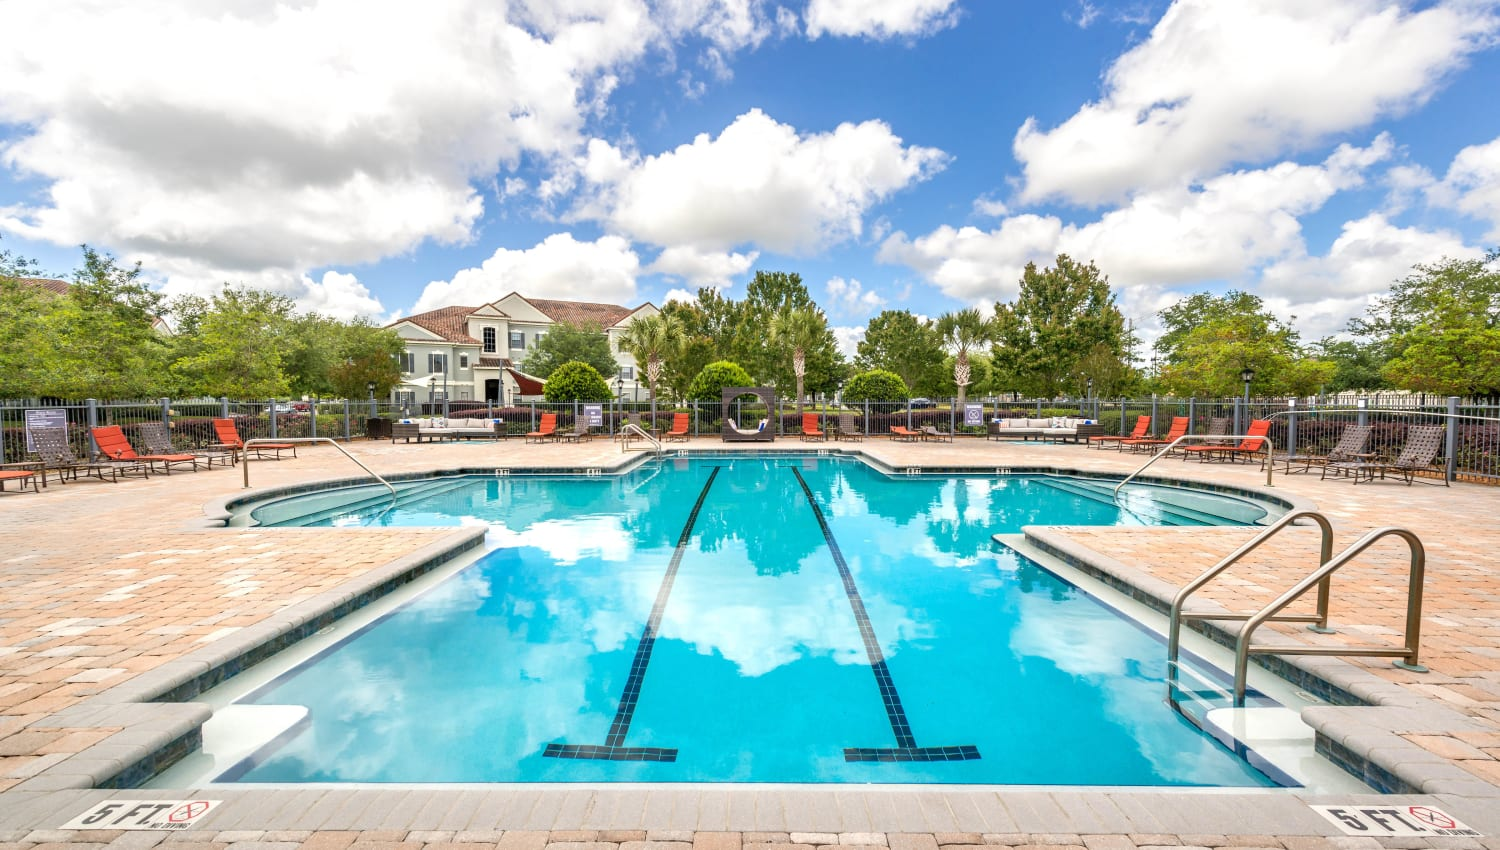 Lap lanes in the swimming pool at Mirador & Stovall at River City in Jacksonville, Florida